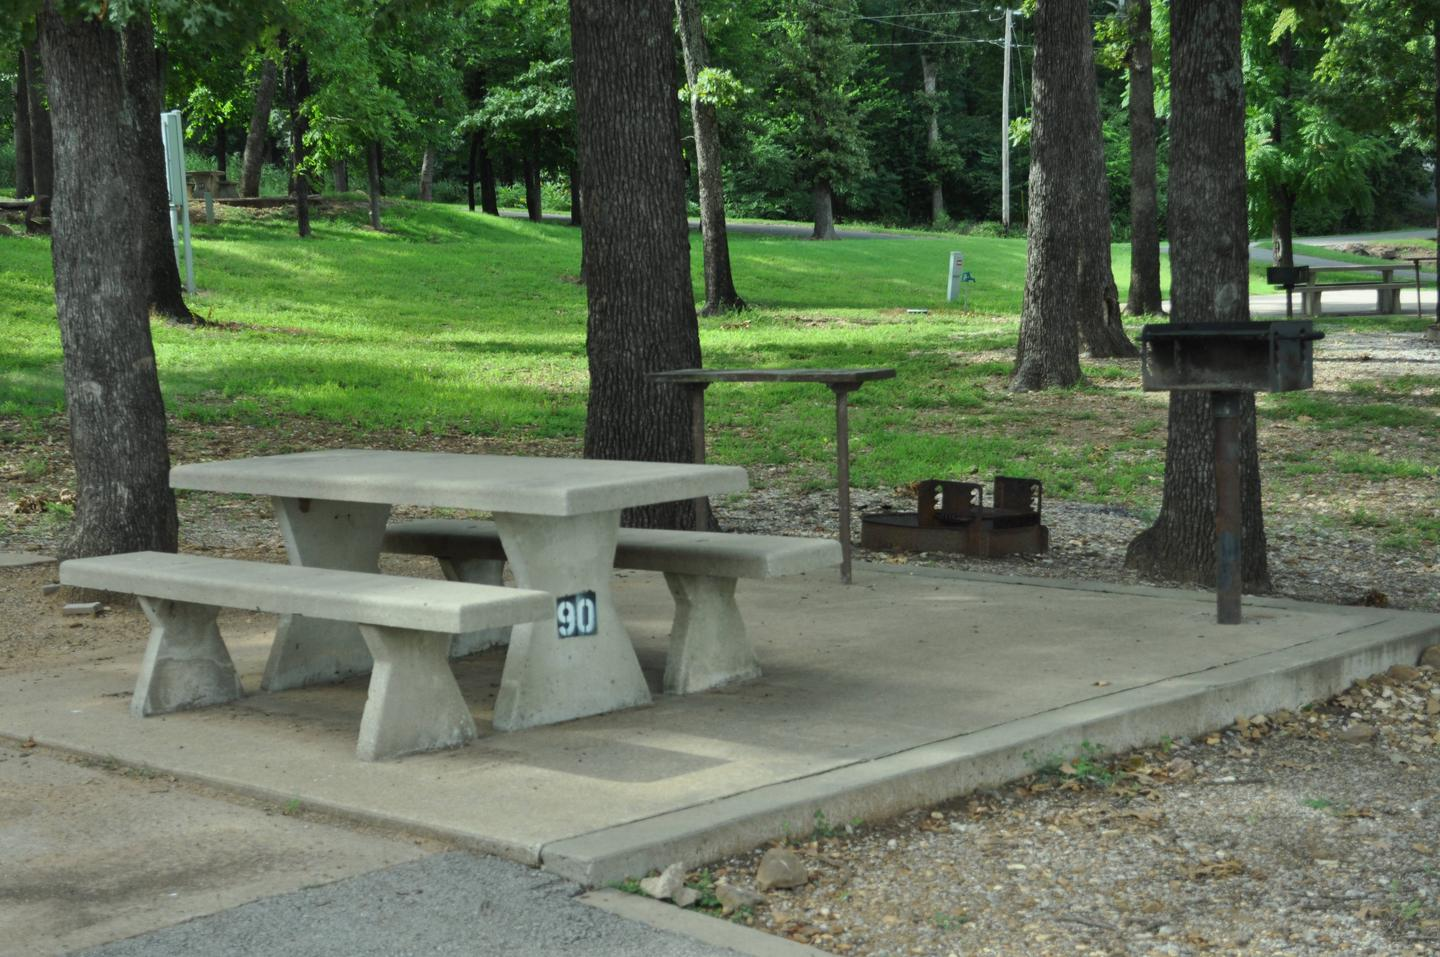 Site 90 offers a concrete picnic table, pedestal grill, utility table and fire ring.Site 90 - Taylor Ferry